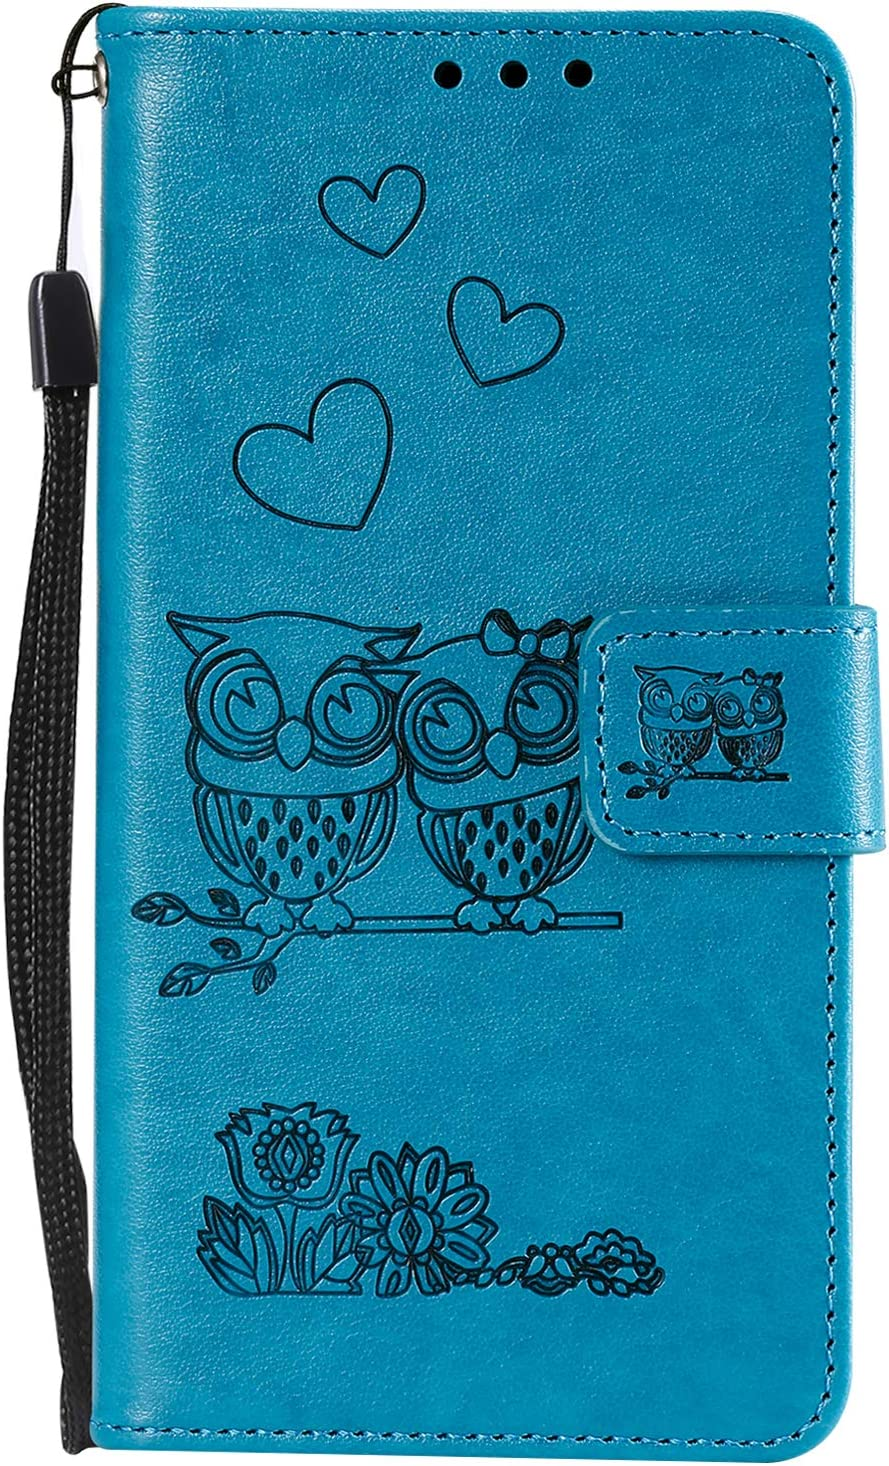 Lomogo Embossed Owl Huawei P Smart Case Leather Wallet Case with Kickstand Card Holder Shockproof Flip Case Cover for Huawei P Smart//nova lite 2 LOHHA100565 Blue